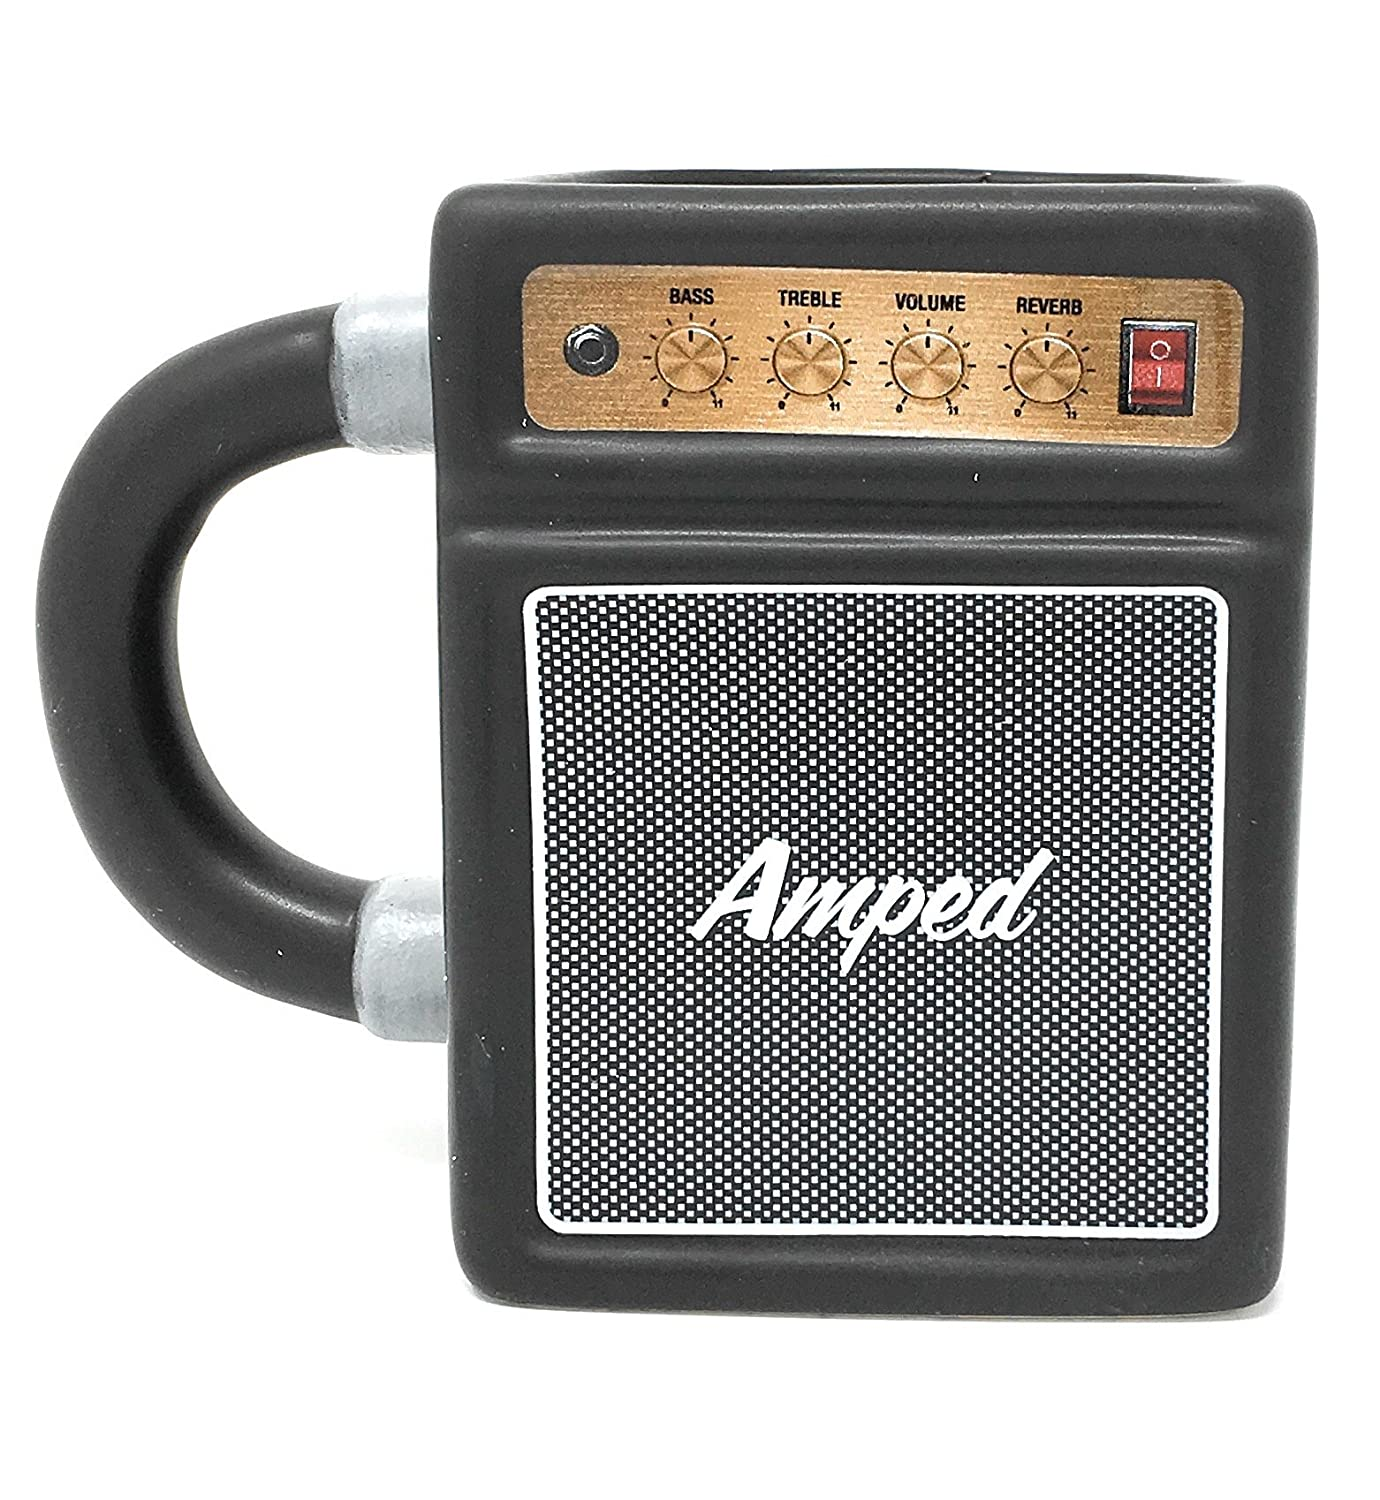 Amped Amplifier - Novelty Coffee Mug, Extra Large